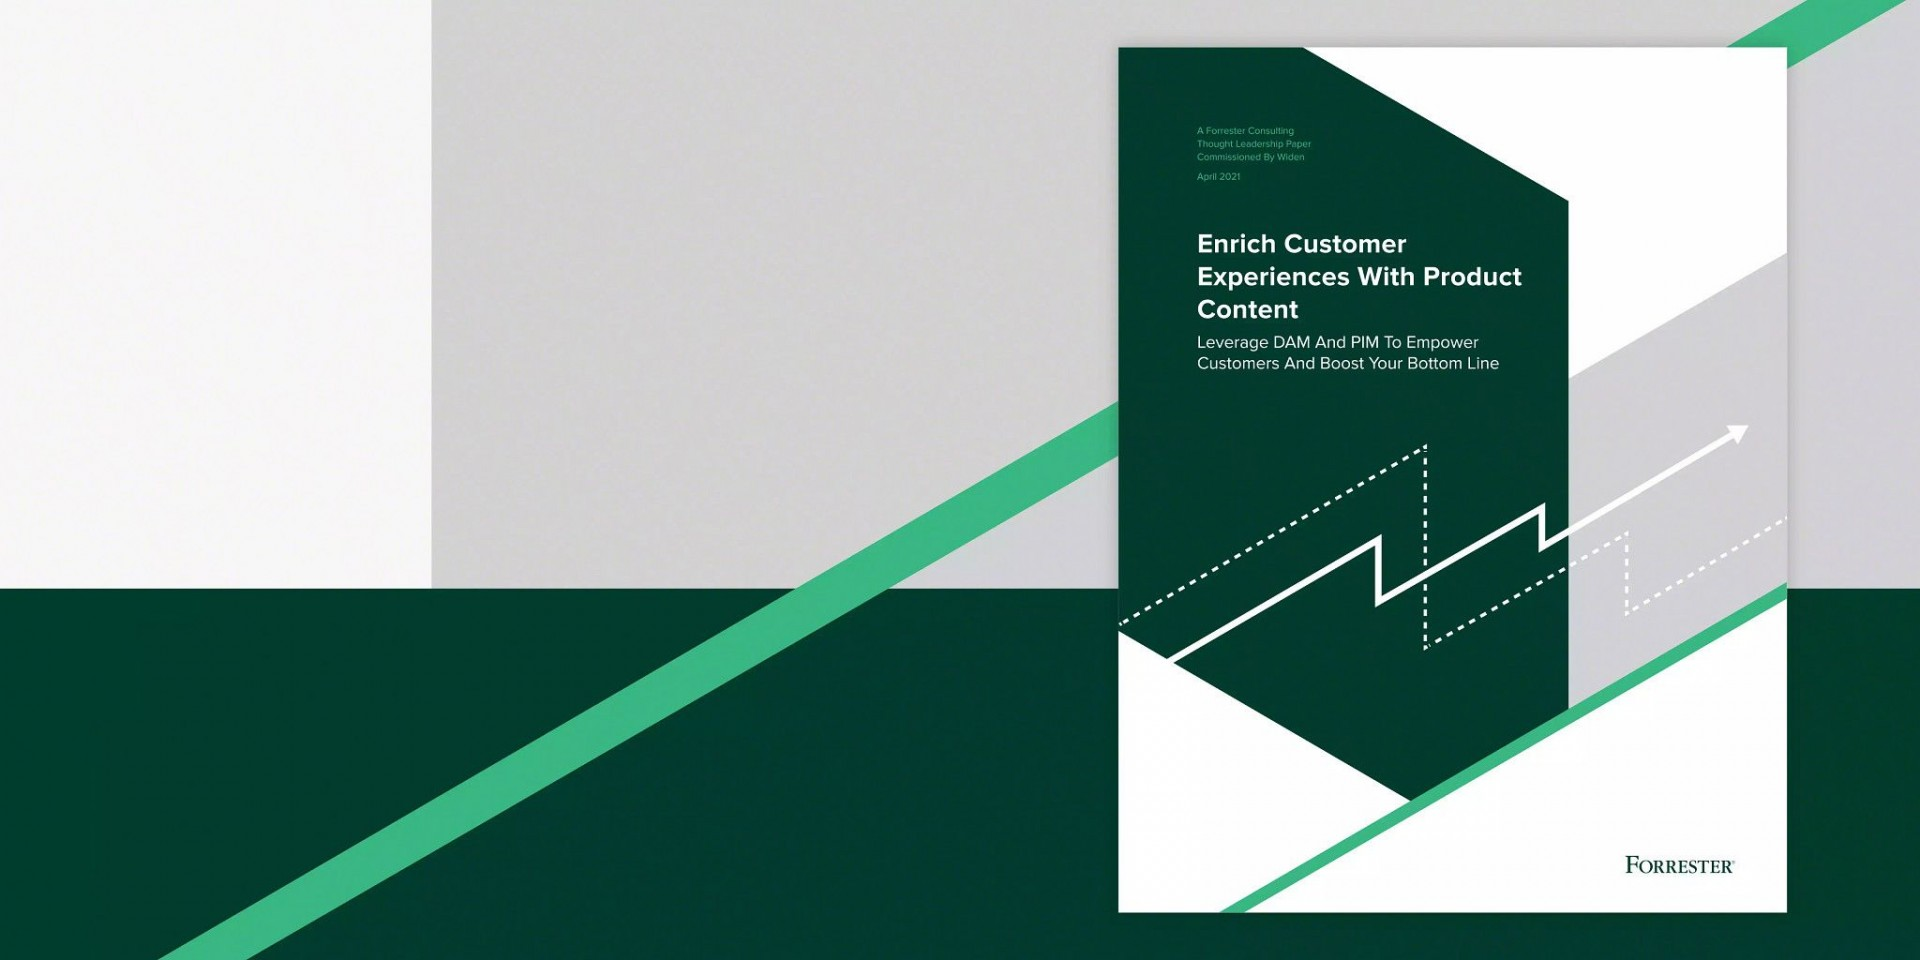 Enrich customer experiences with an integrated product content strategy